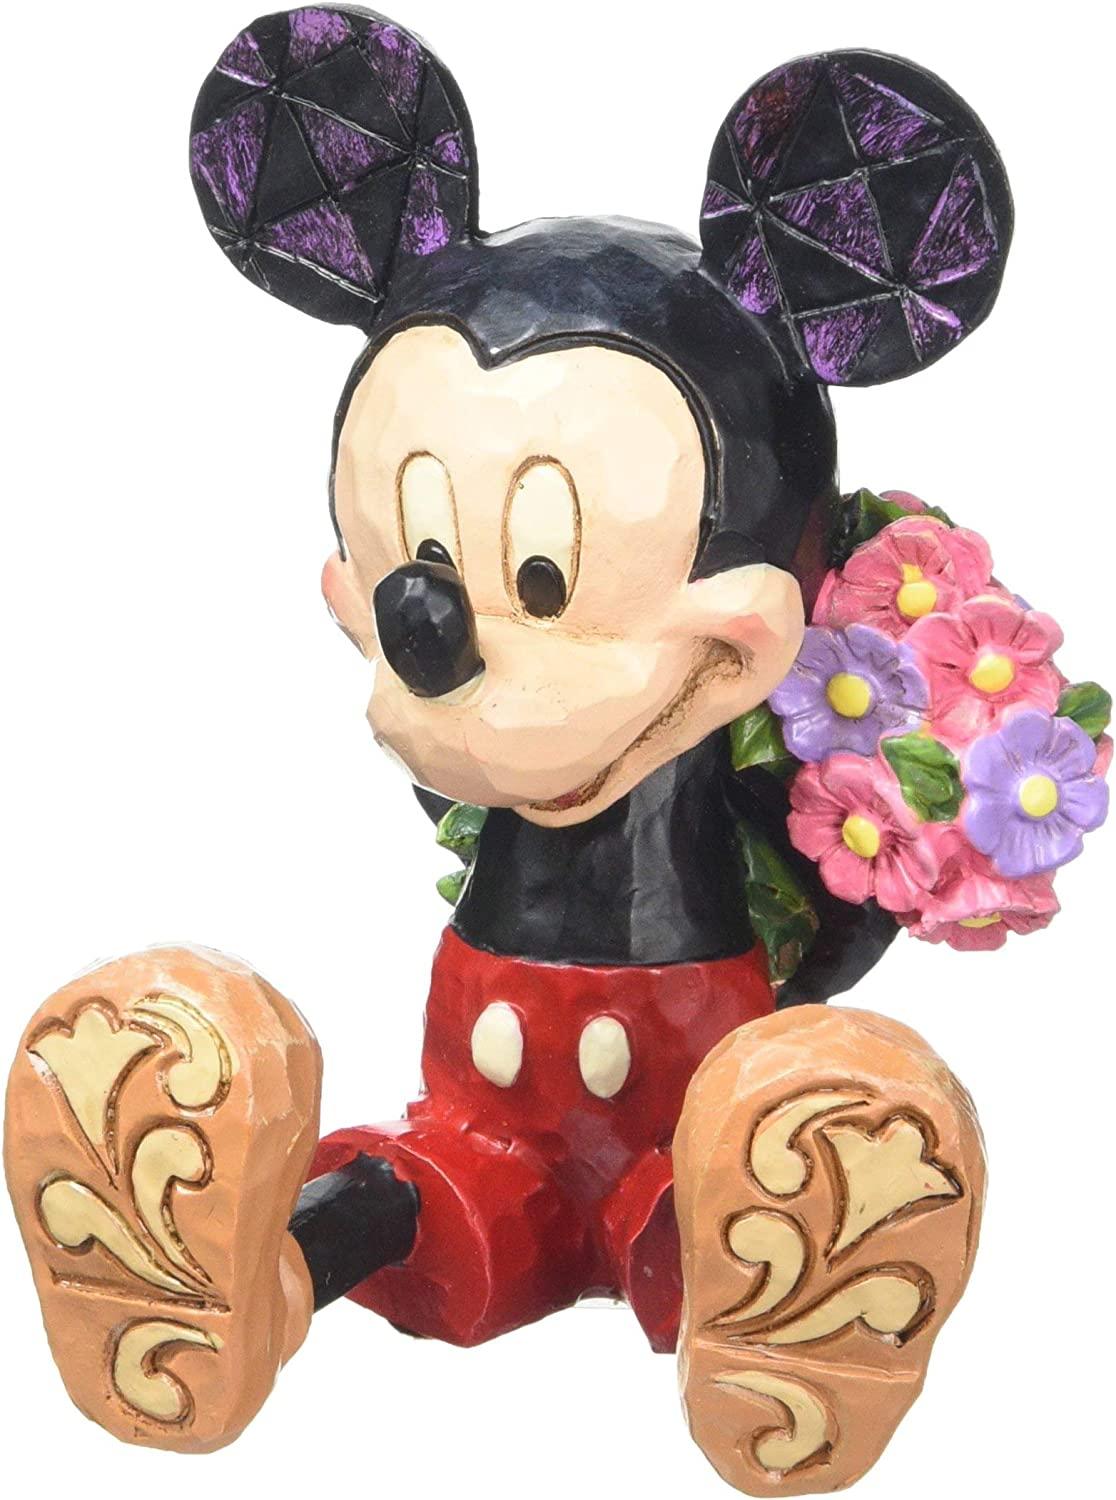 Disney Traditions by Jim Shore Mini Mickey Mouse Personality Pose Stone Resin Figurine, 2.75""